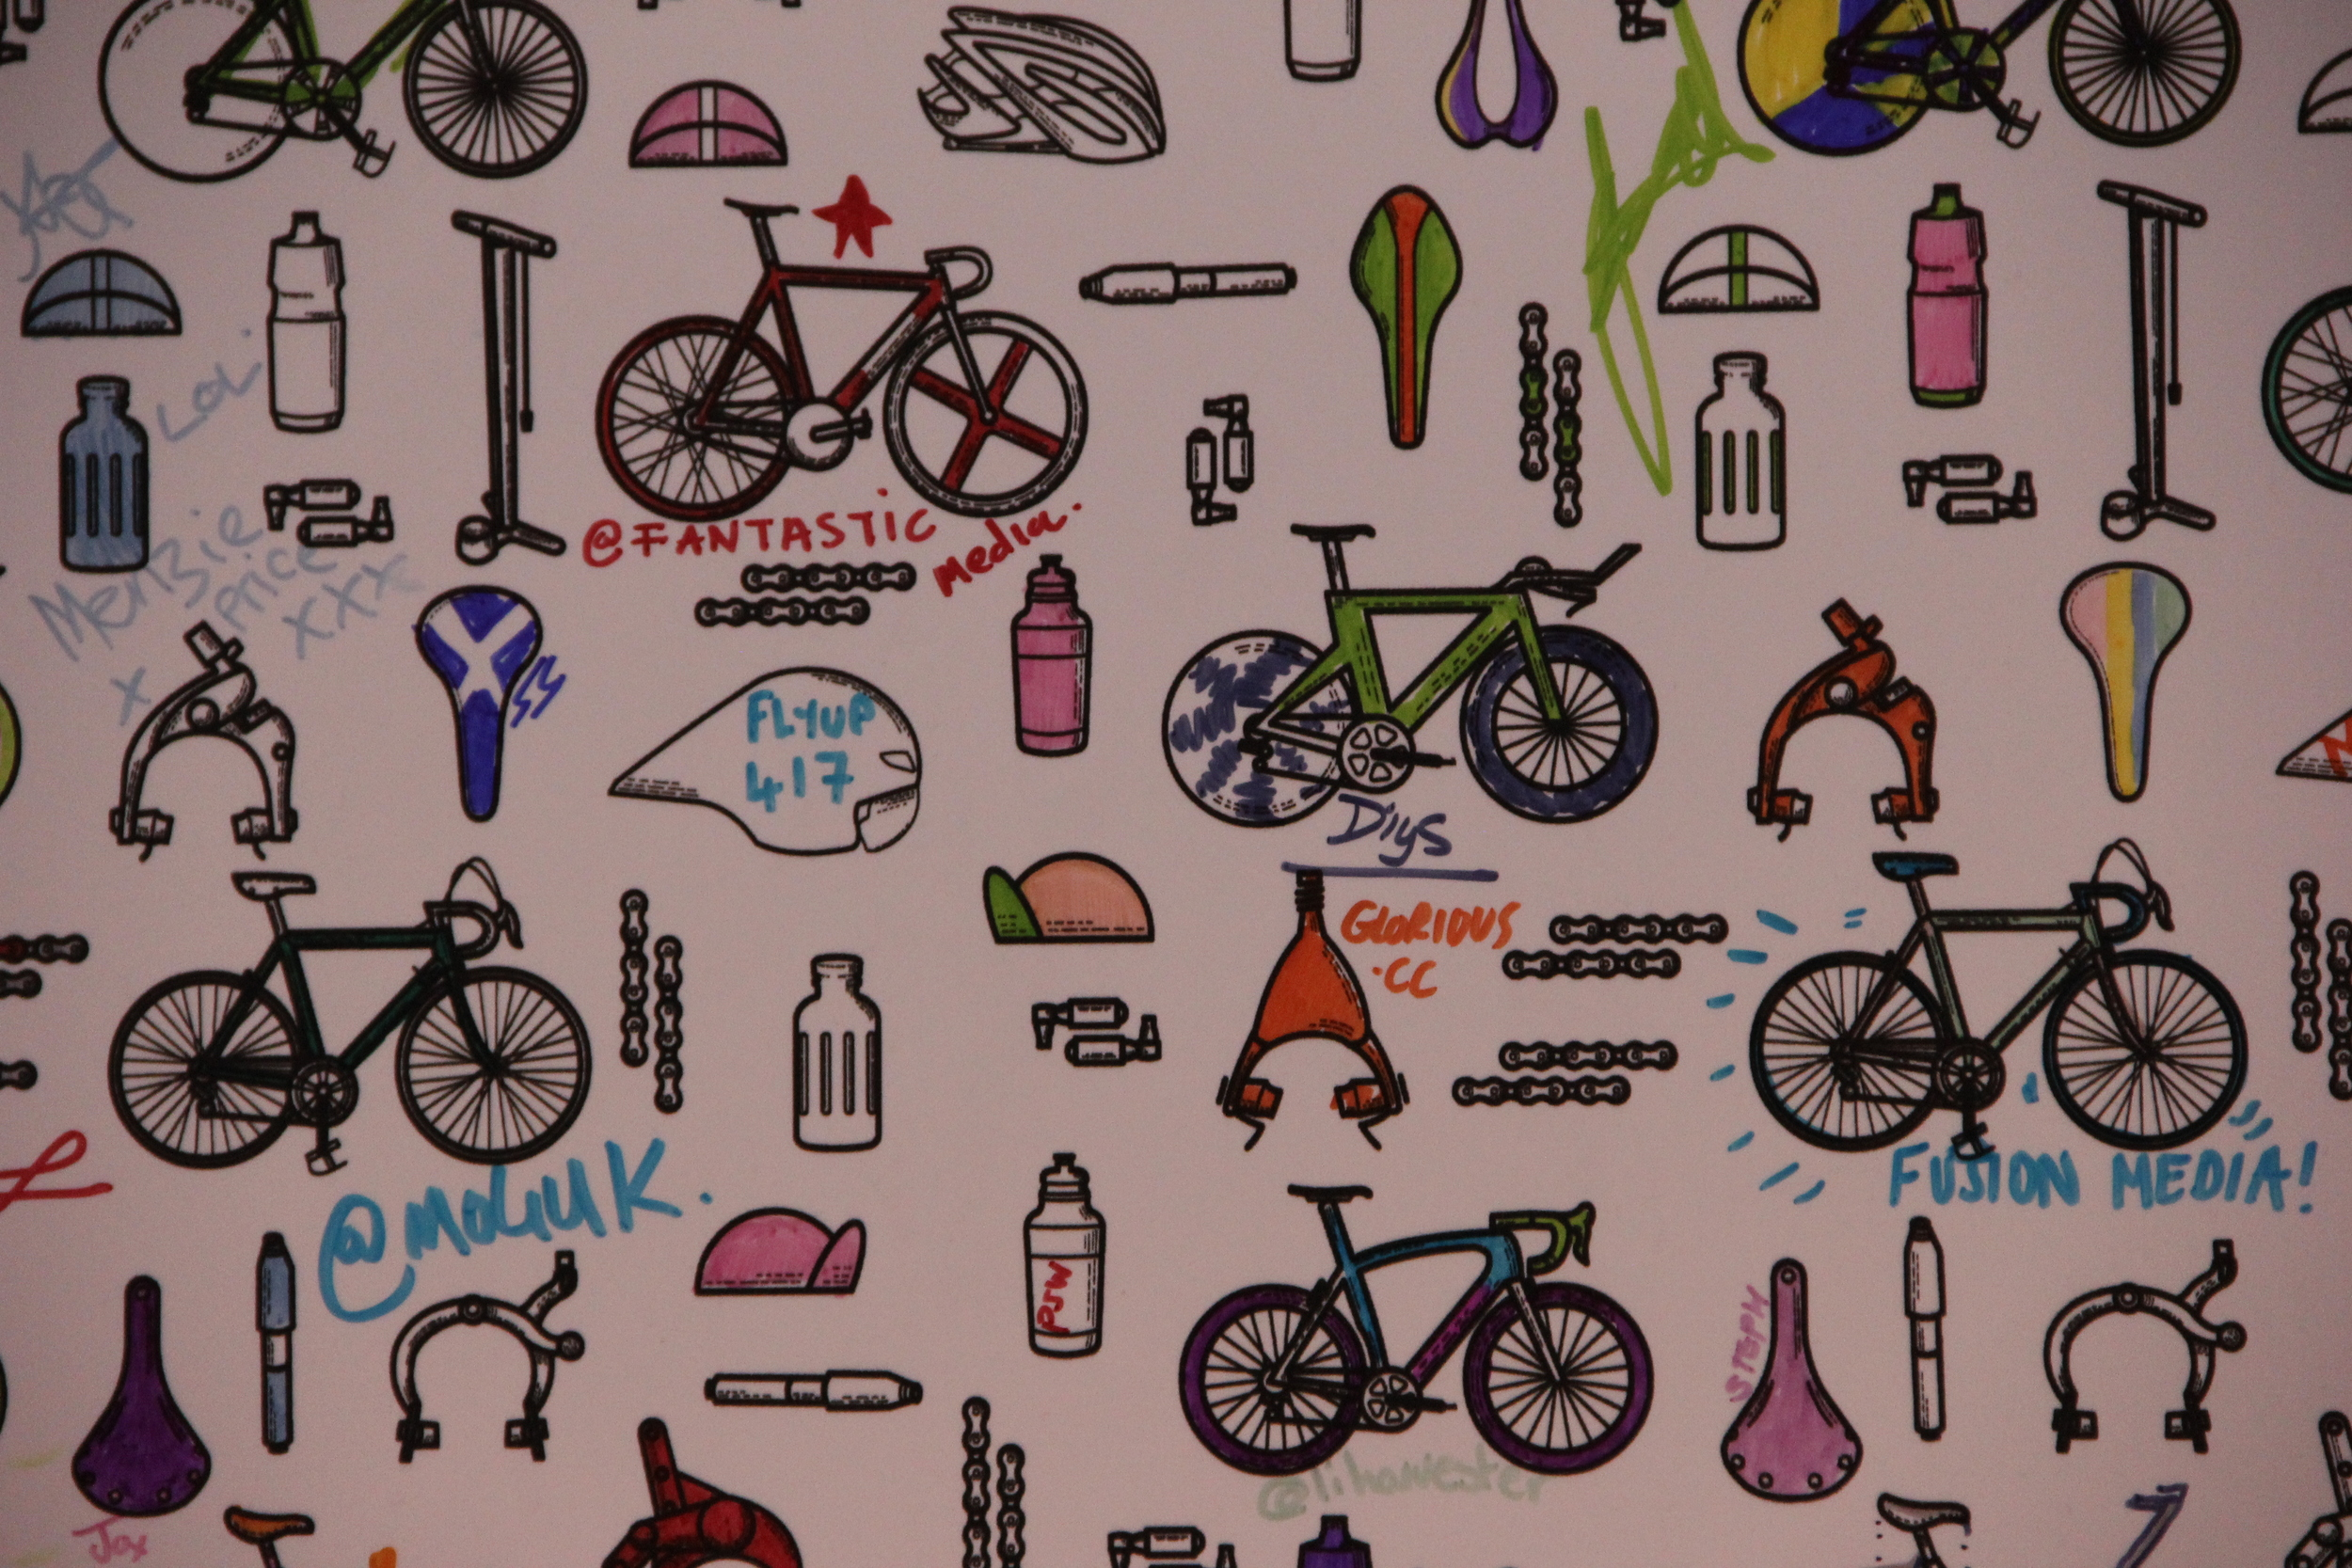 And finally, the Most Innovative Exhibitor has to go to  Drops . This company manufacture wallpaper to colour in or buy, they also design exhibition spaces and had a hand in Bianchi's stand. They also sell cycling images and have recently launched their own women's road cycling team. Go team Drops!